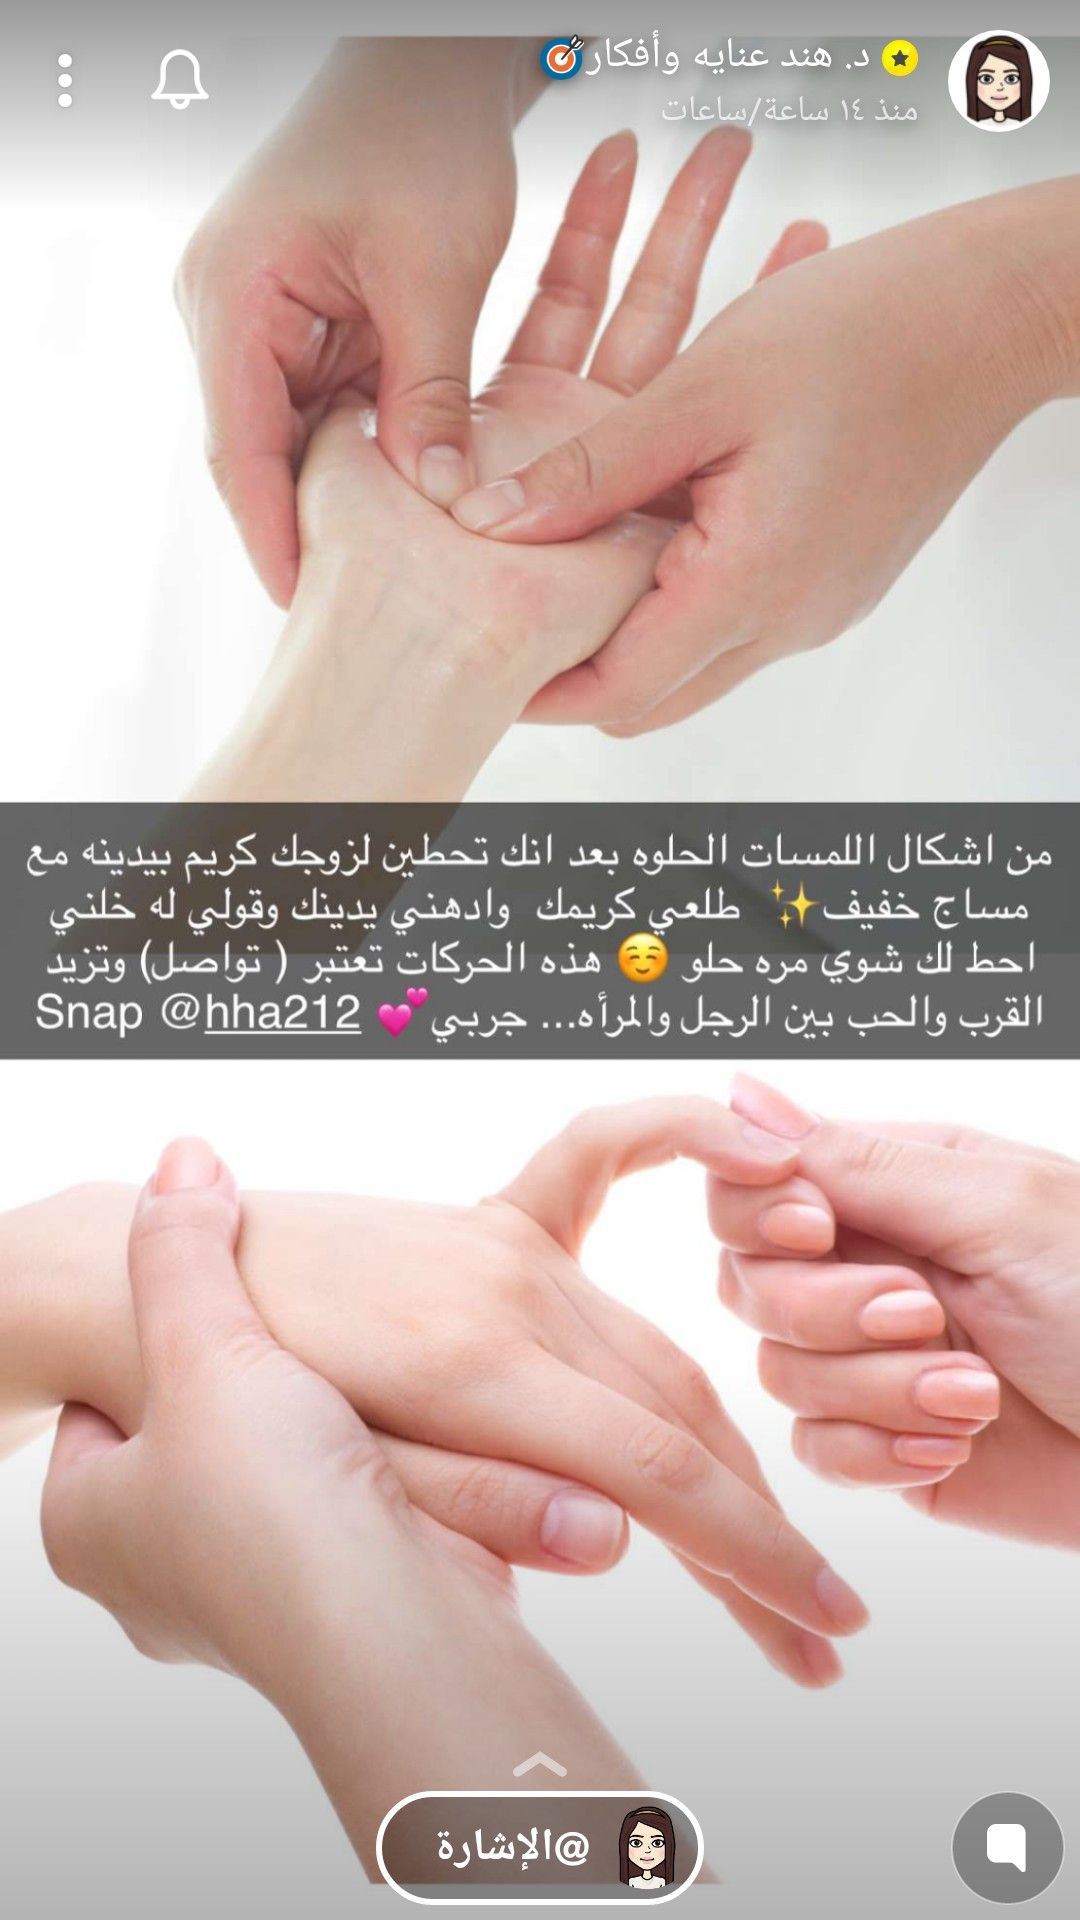 Pin By Raneem On د هند عنايه وافكار Beauty Care Routine Marriage Words Skin Care Women